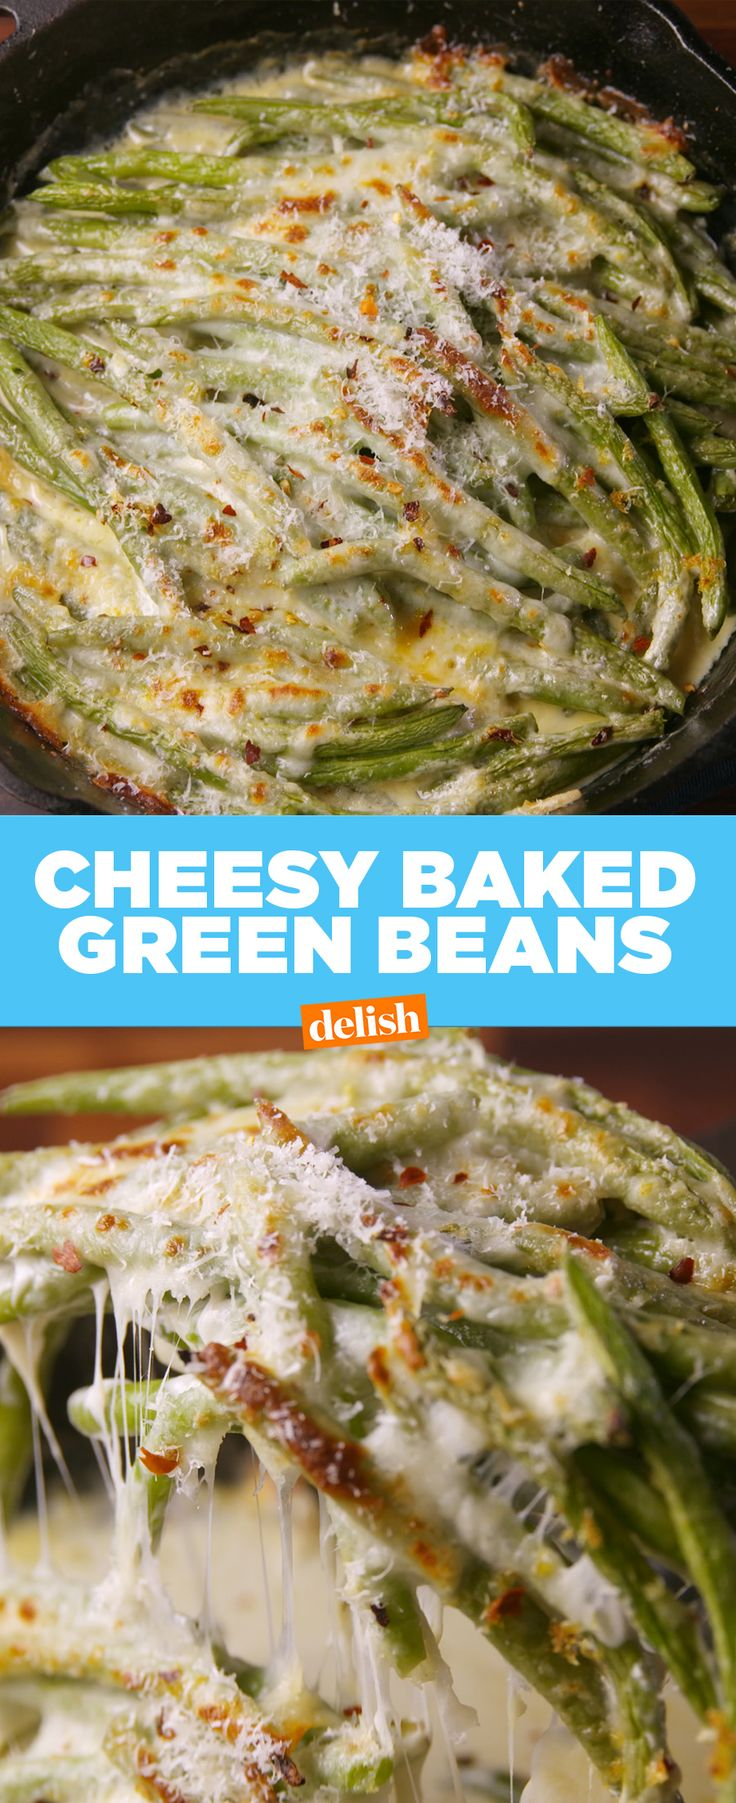 These Cheesy Baked Green Beans will steal the spotlight this Thanksgiving. Get the recipe at Delish.com.